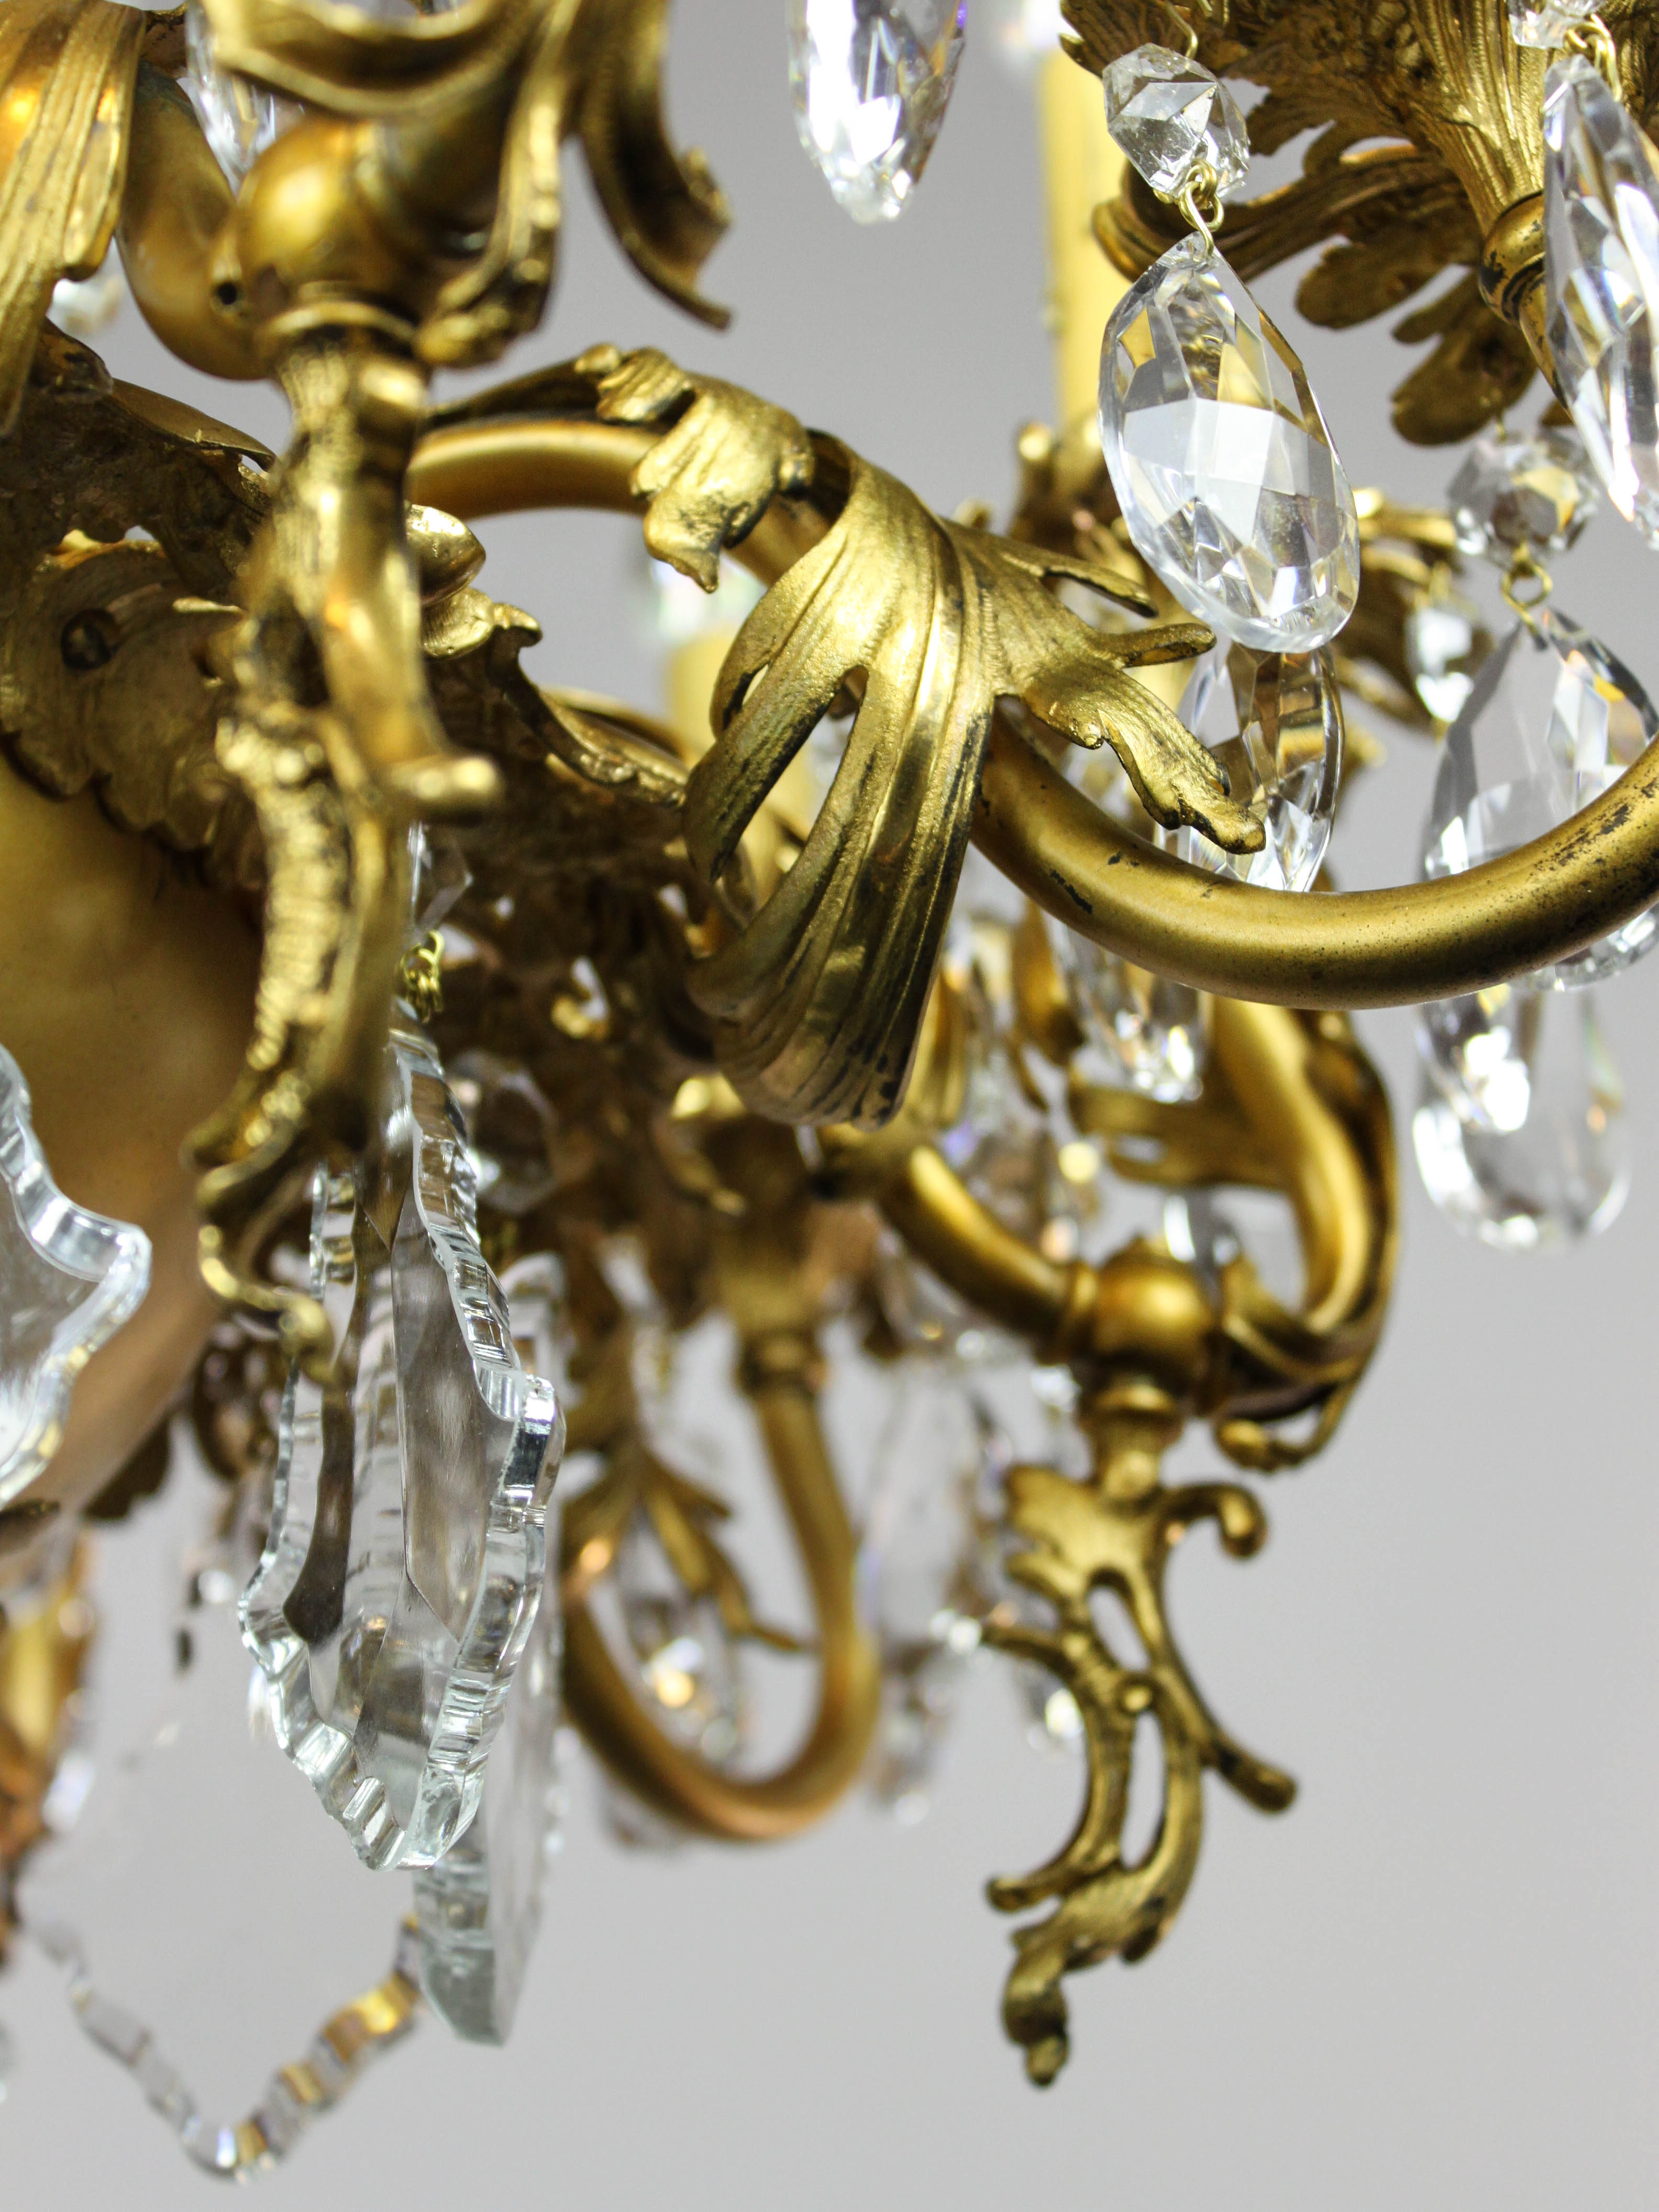 Gold Plated Rococo Converted Gas Chandelier 10 Light